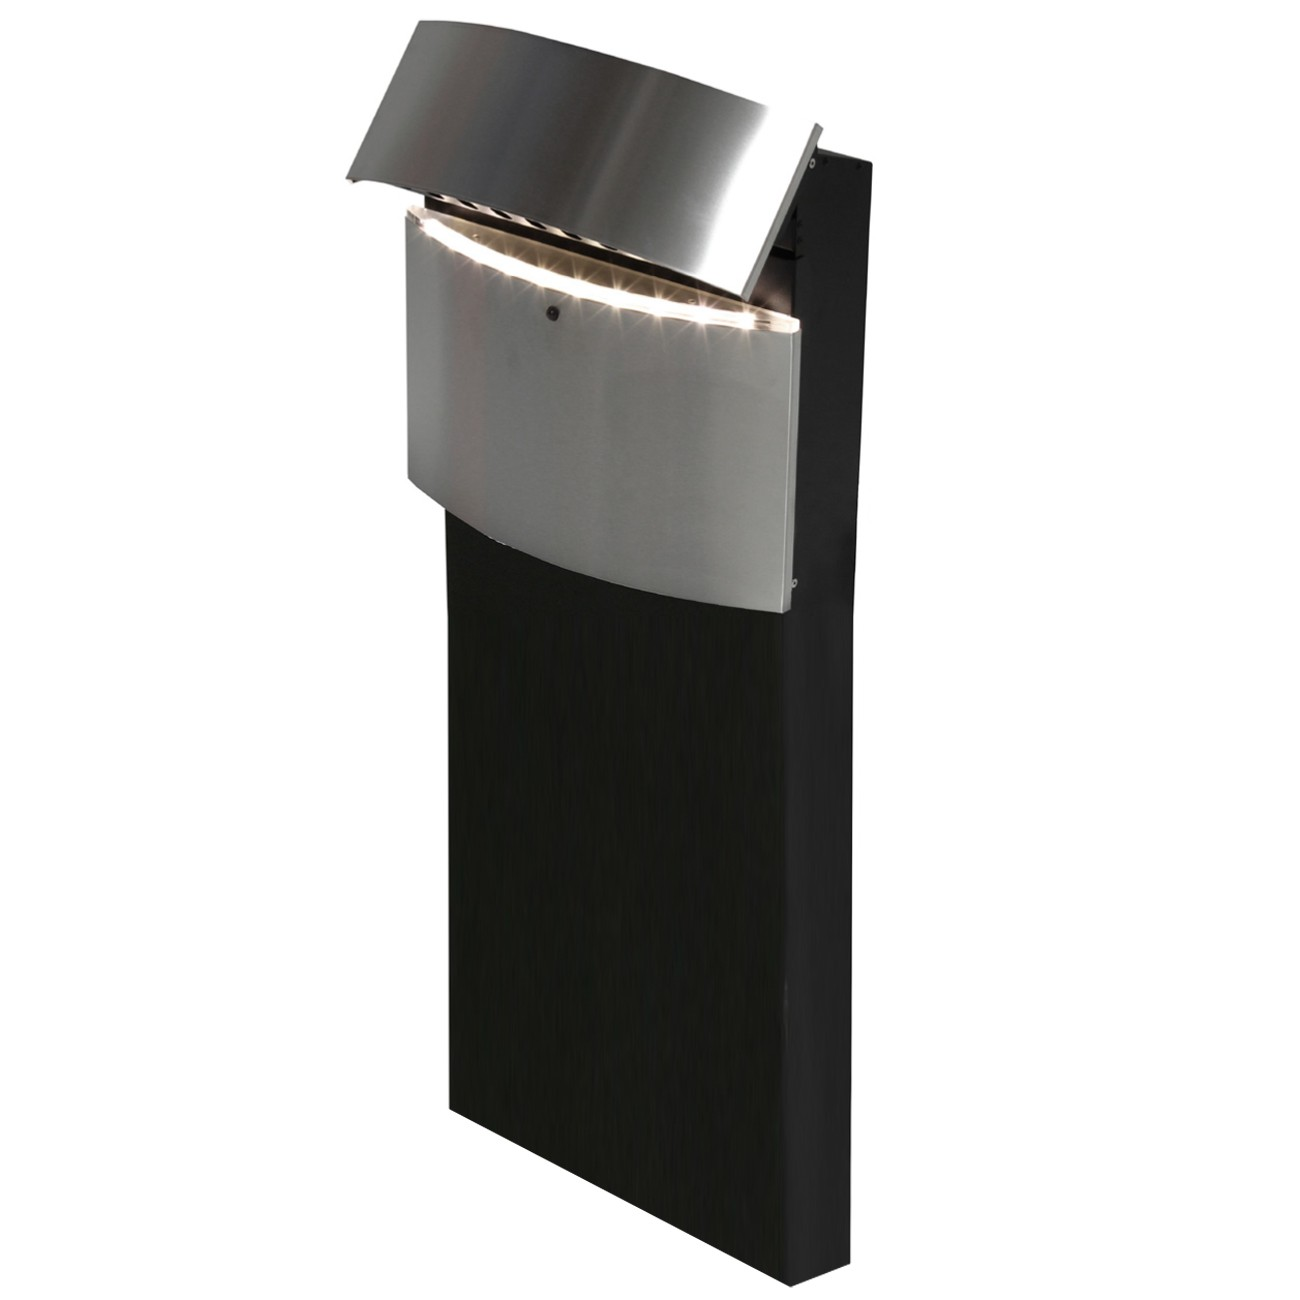 safepost 128 led standbriefkasten schwarz mit. Black Bedroom Furniture Sets. Home Design Ideas